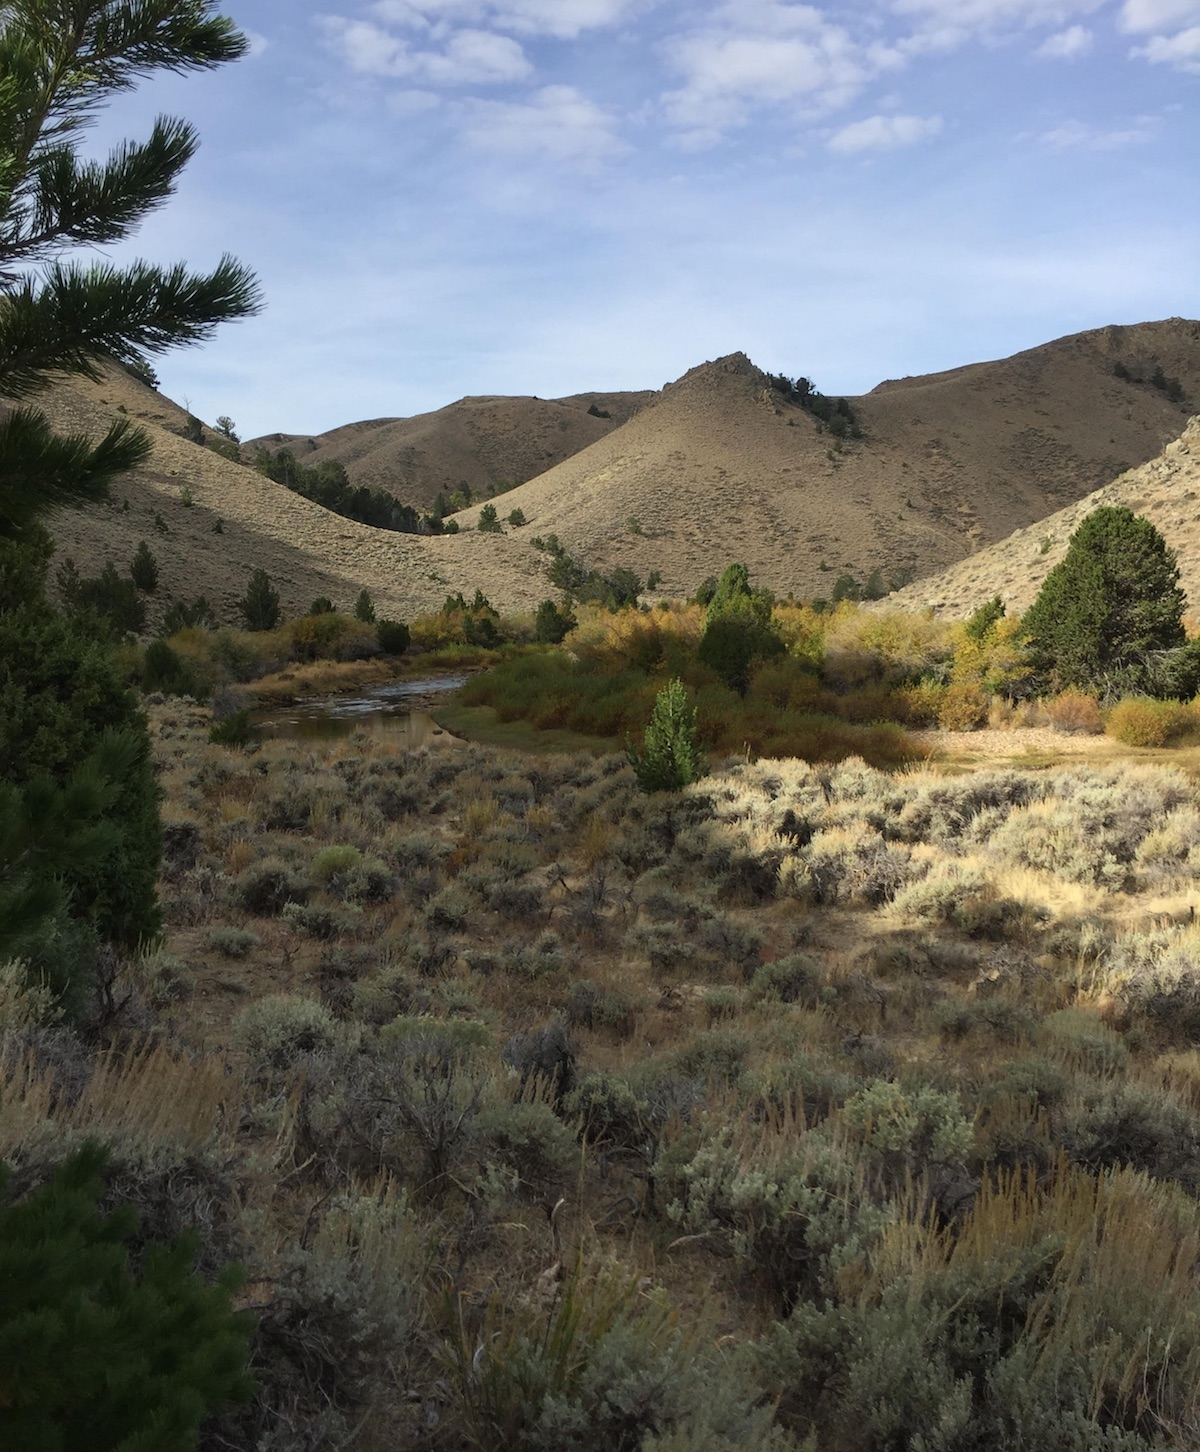 Sagebrush, hills, and trees in Wyoming's Red Desert